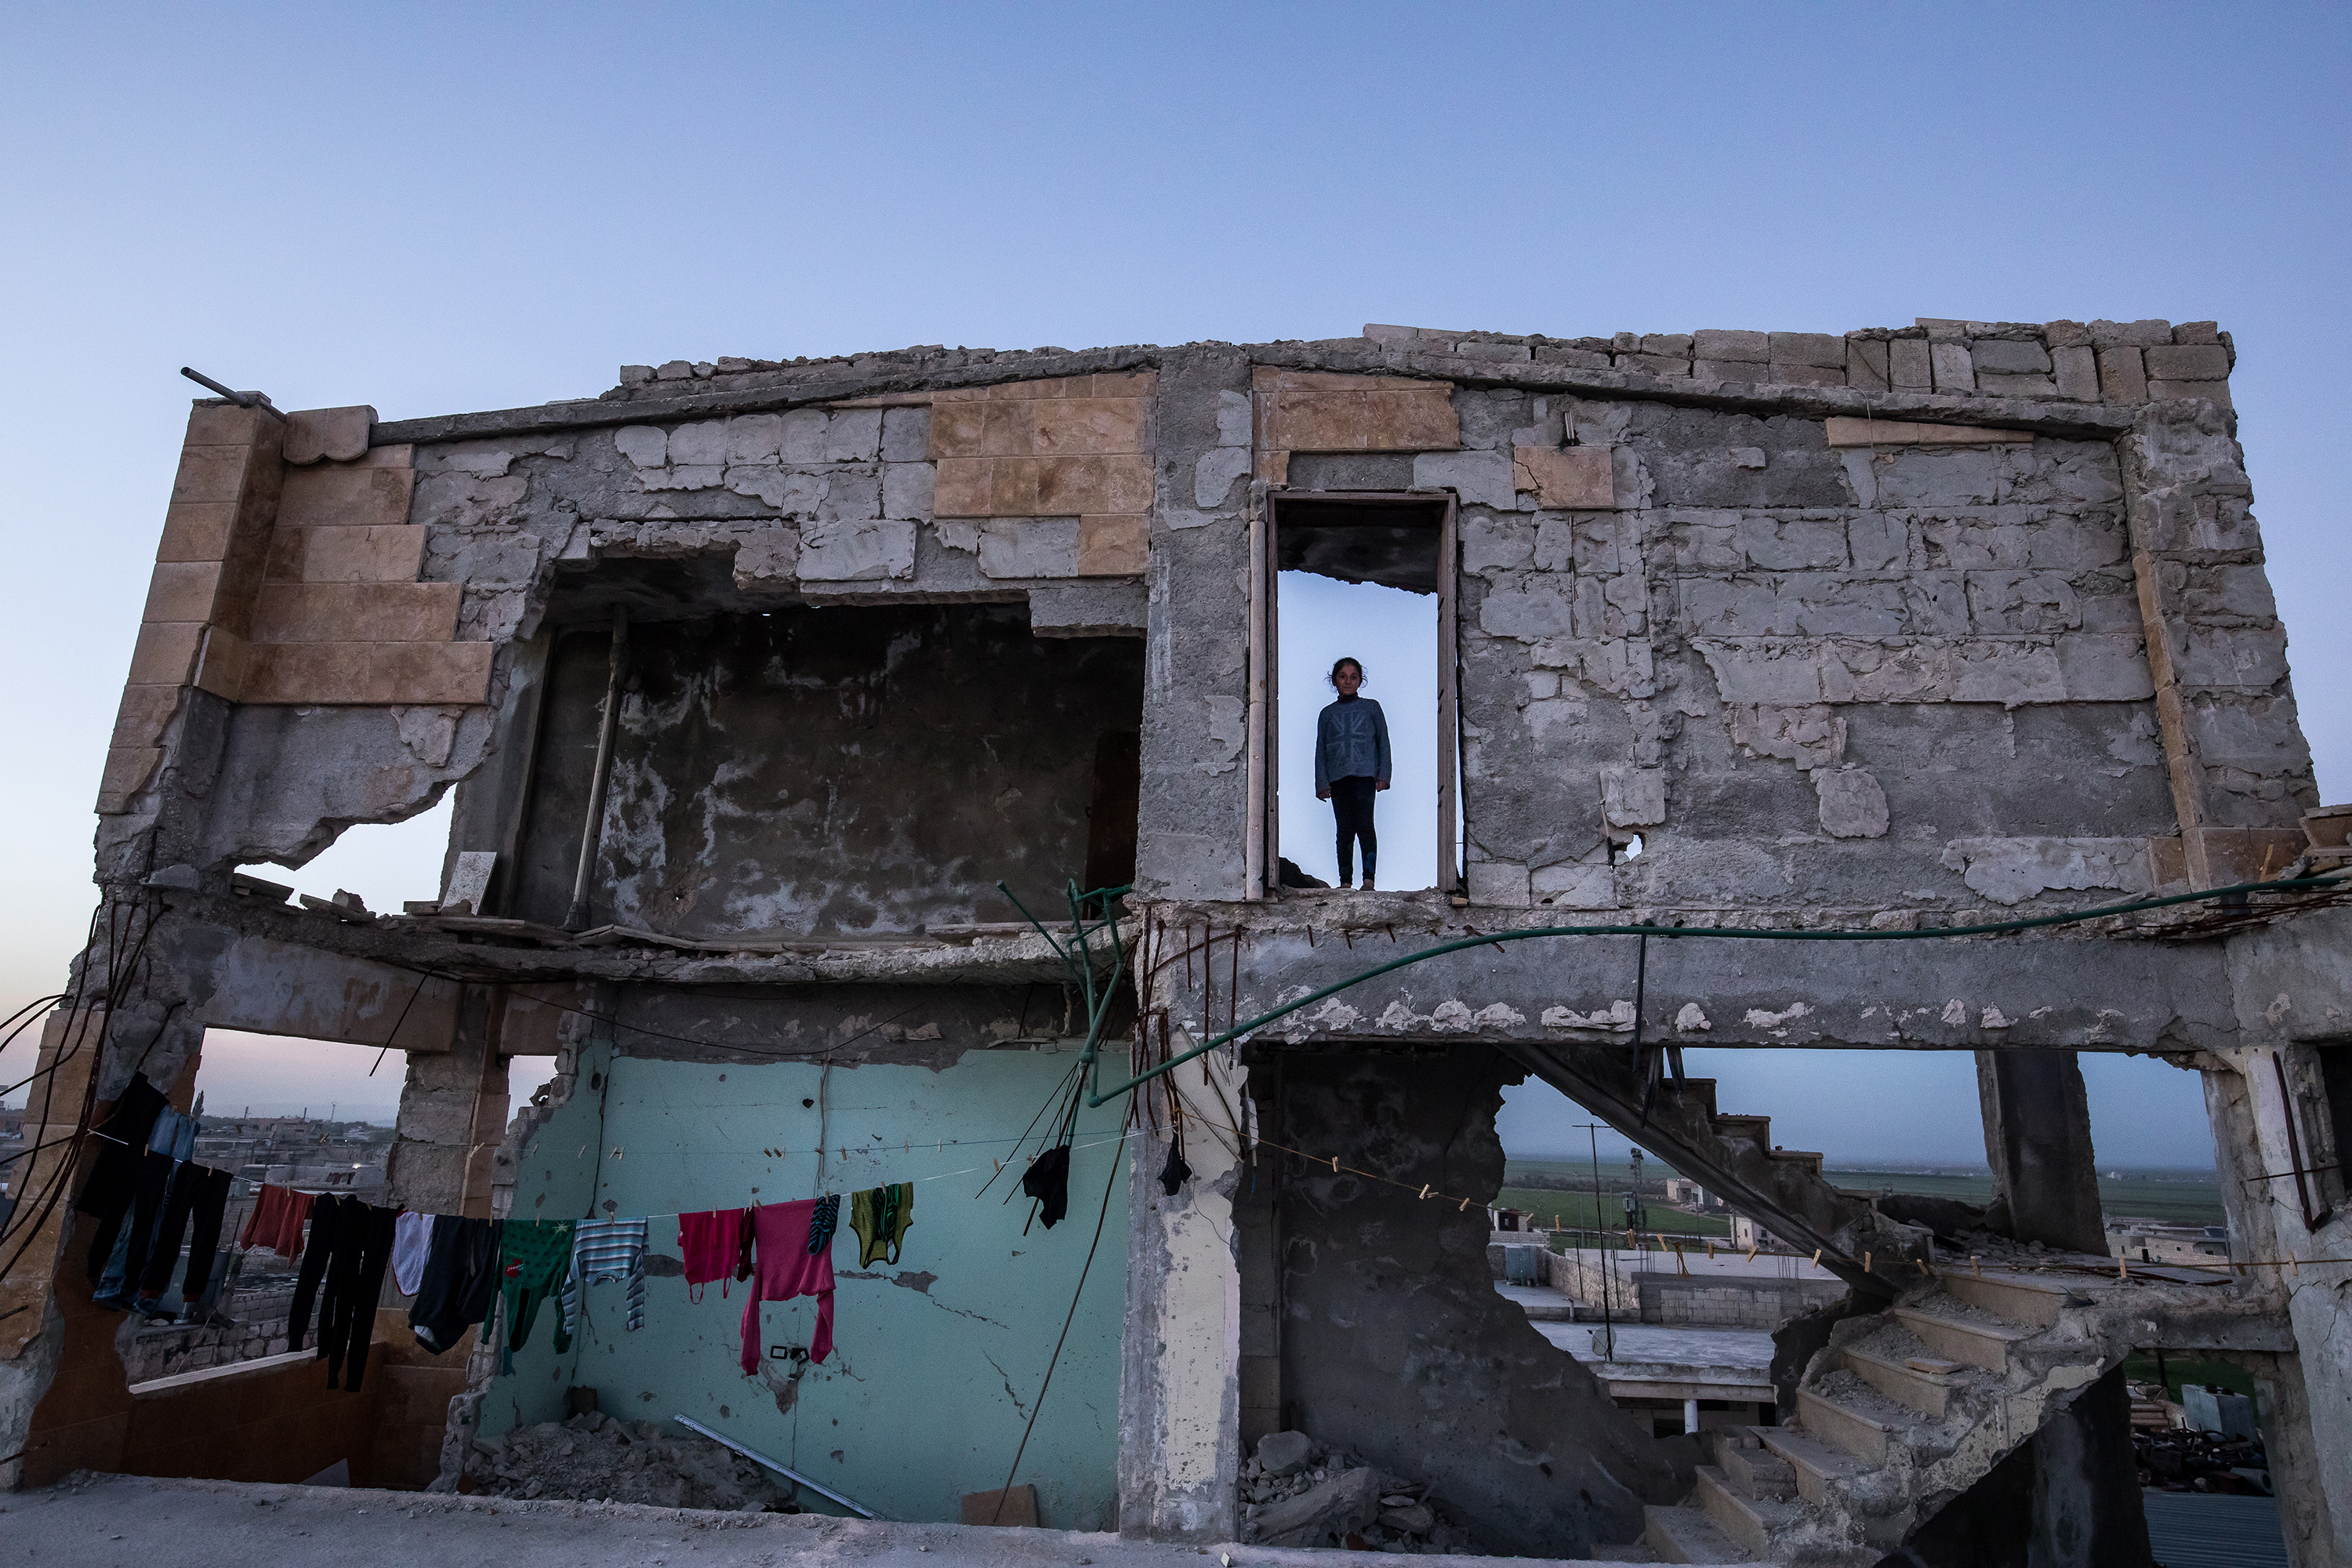 An exterior face of a destroyed building with the silhouette of a young girl in an open doorway on the second floor